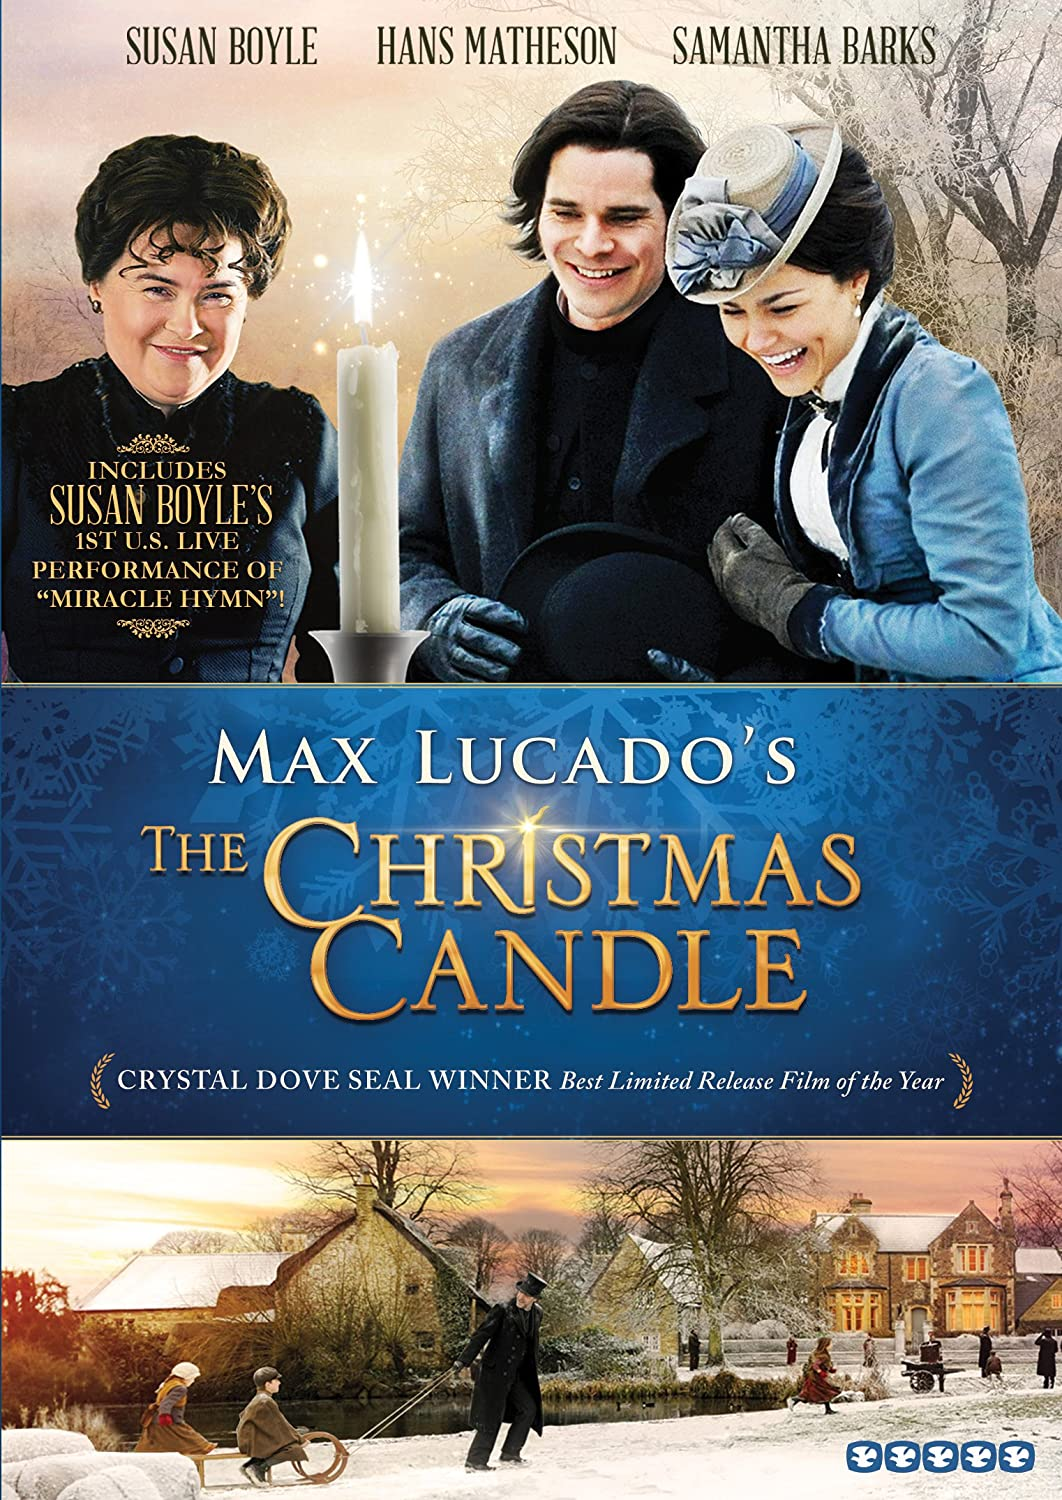 The Christmas Candle - DVD Image